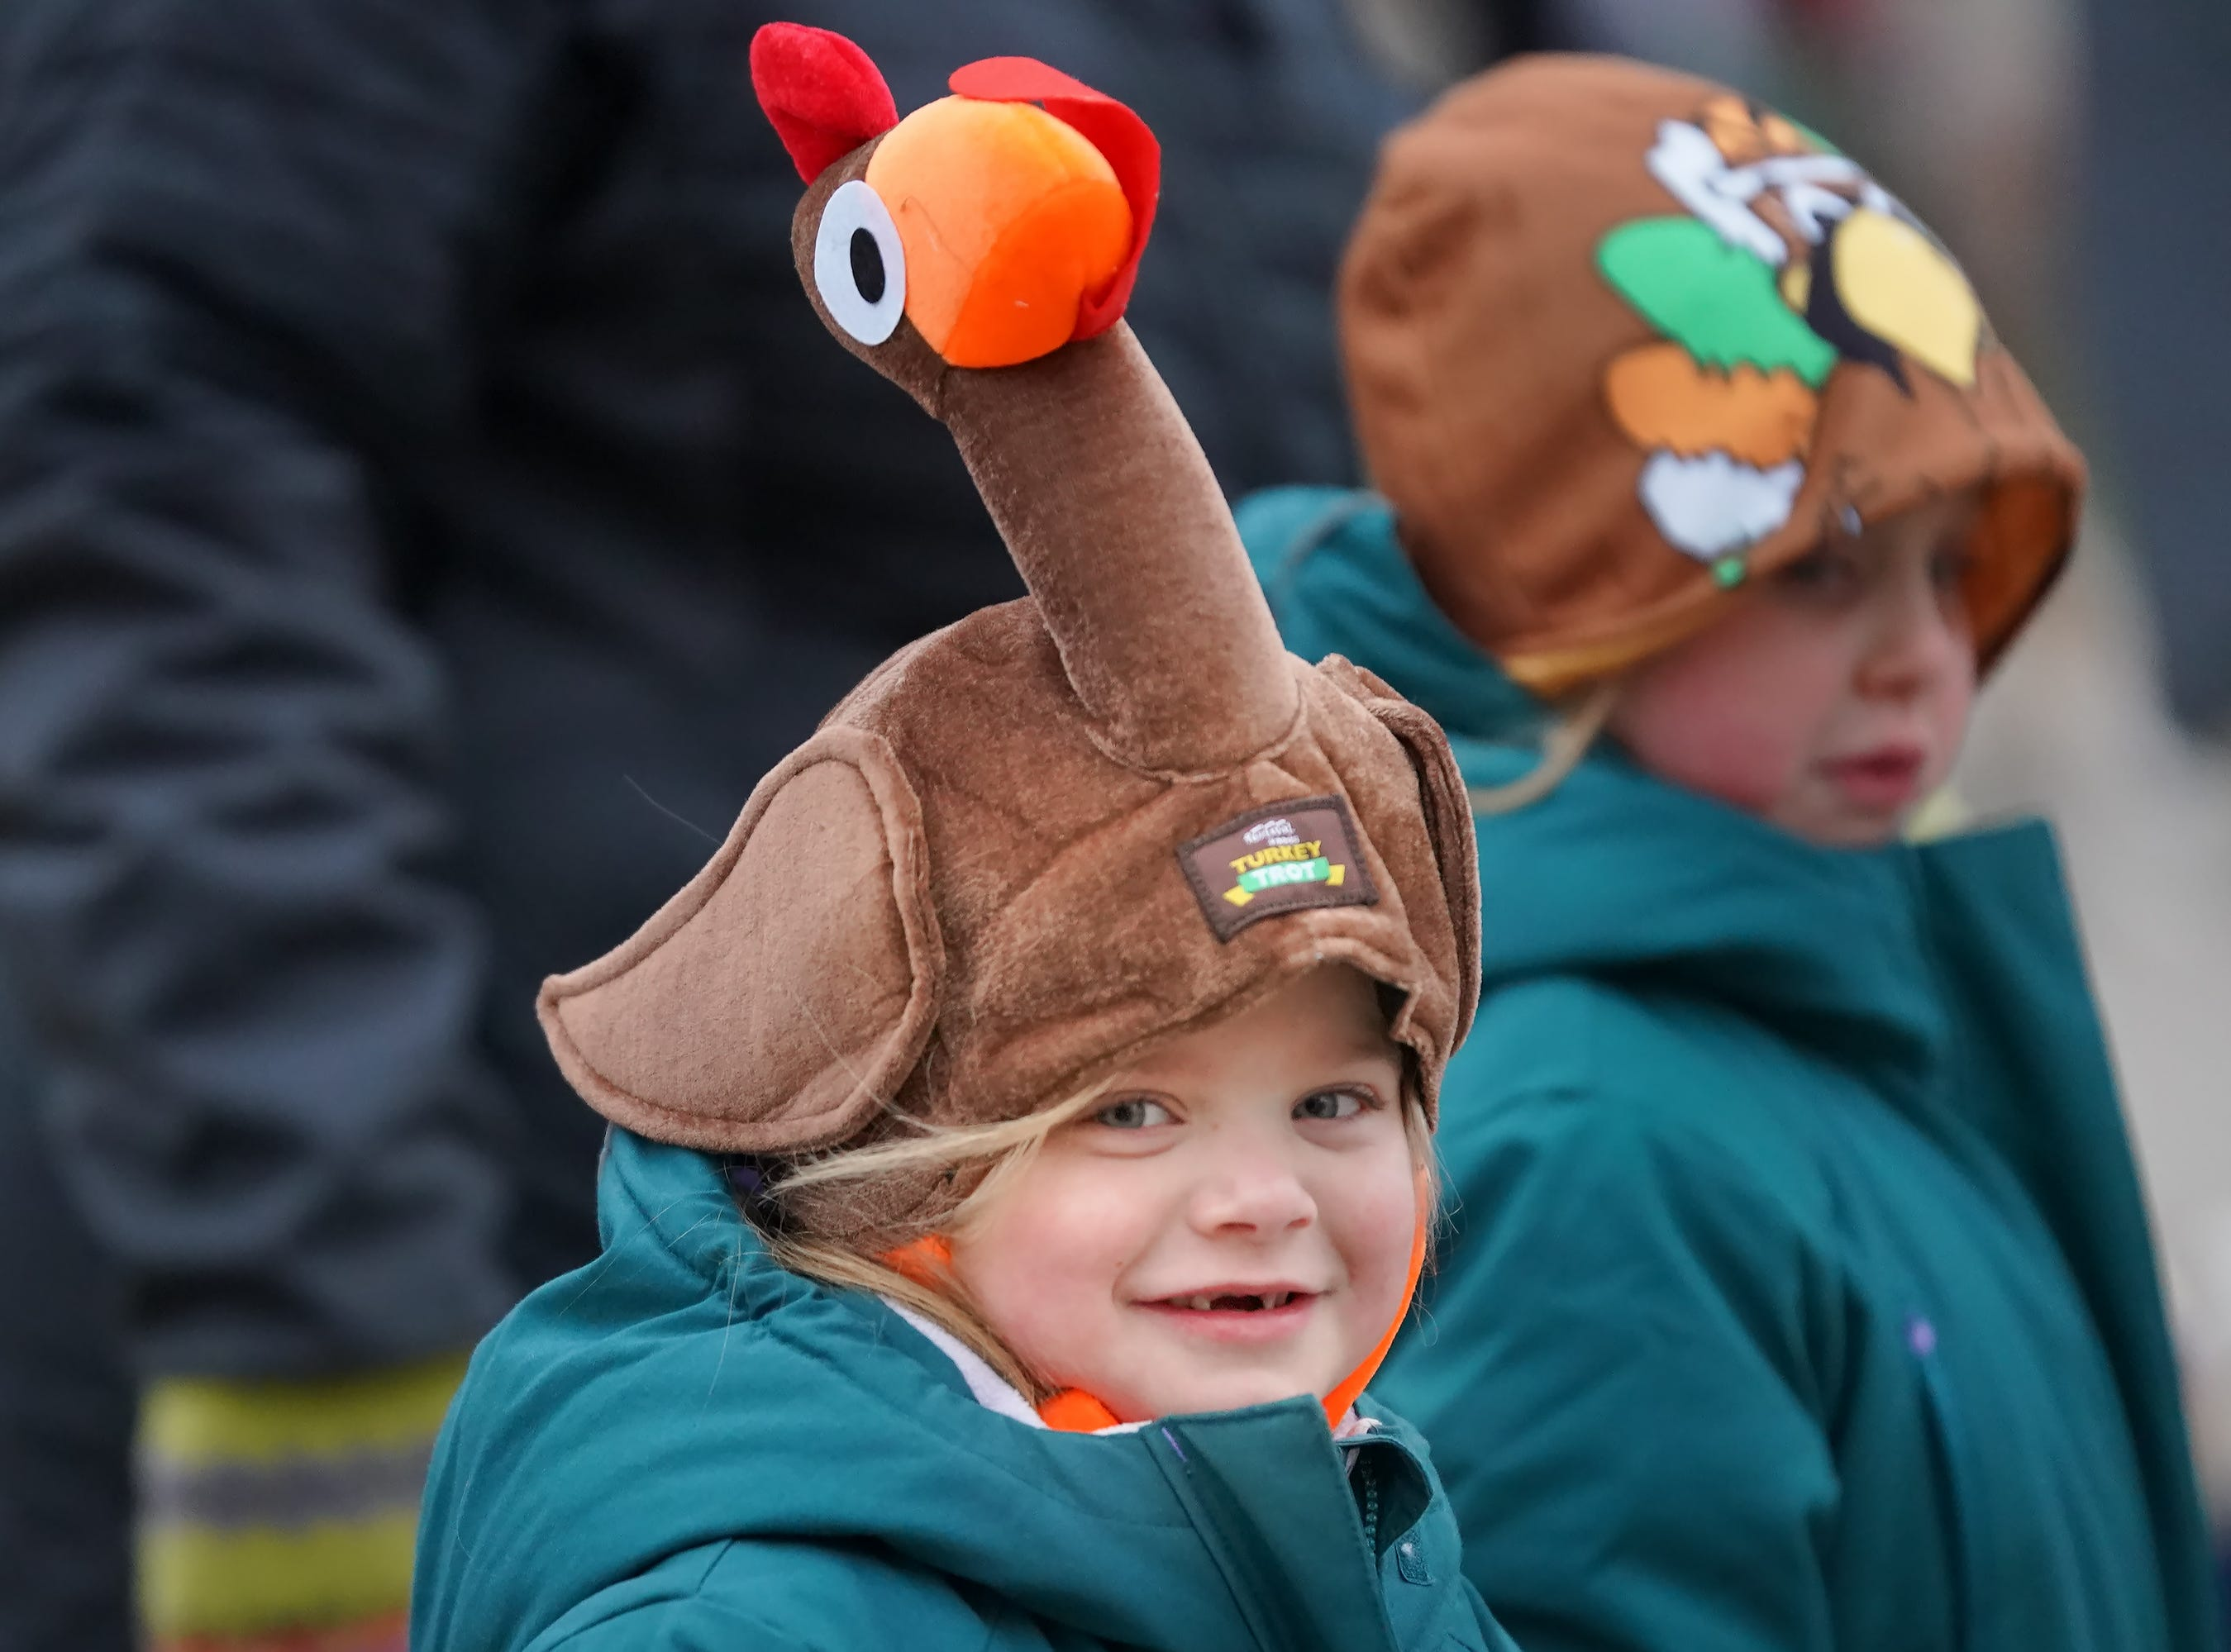 The 11th Annual Festival Foods Turkey Trot was held Thursday morning, November 22, 2018 at the Menominee   Nation Arena in Oshkosh.